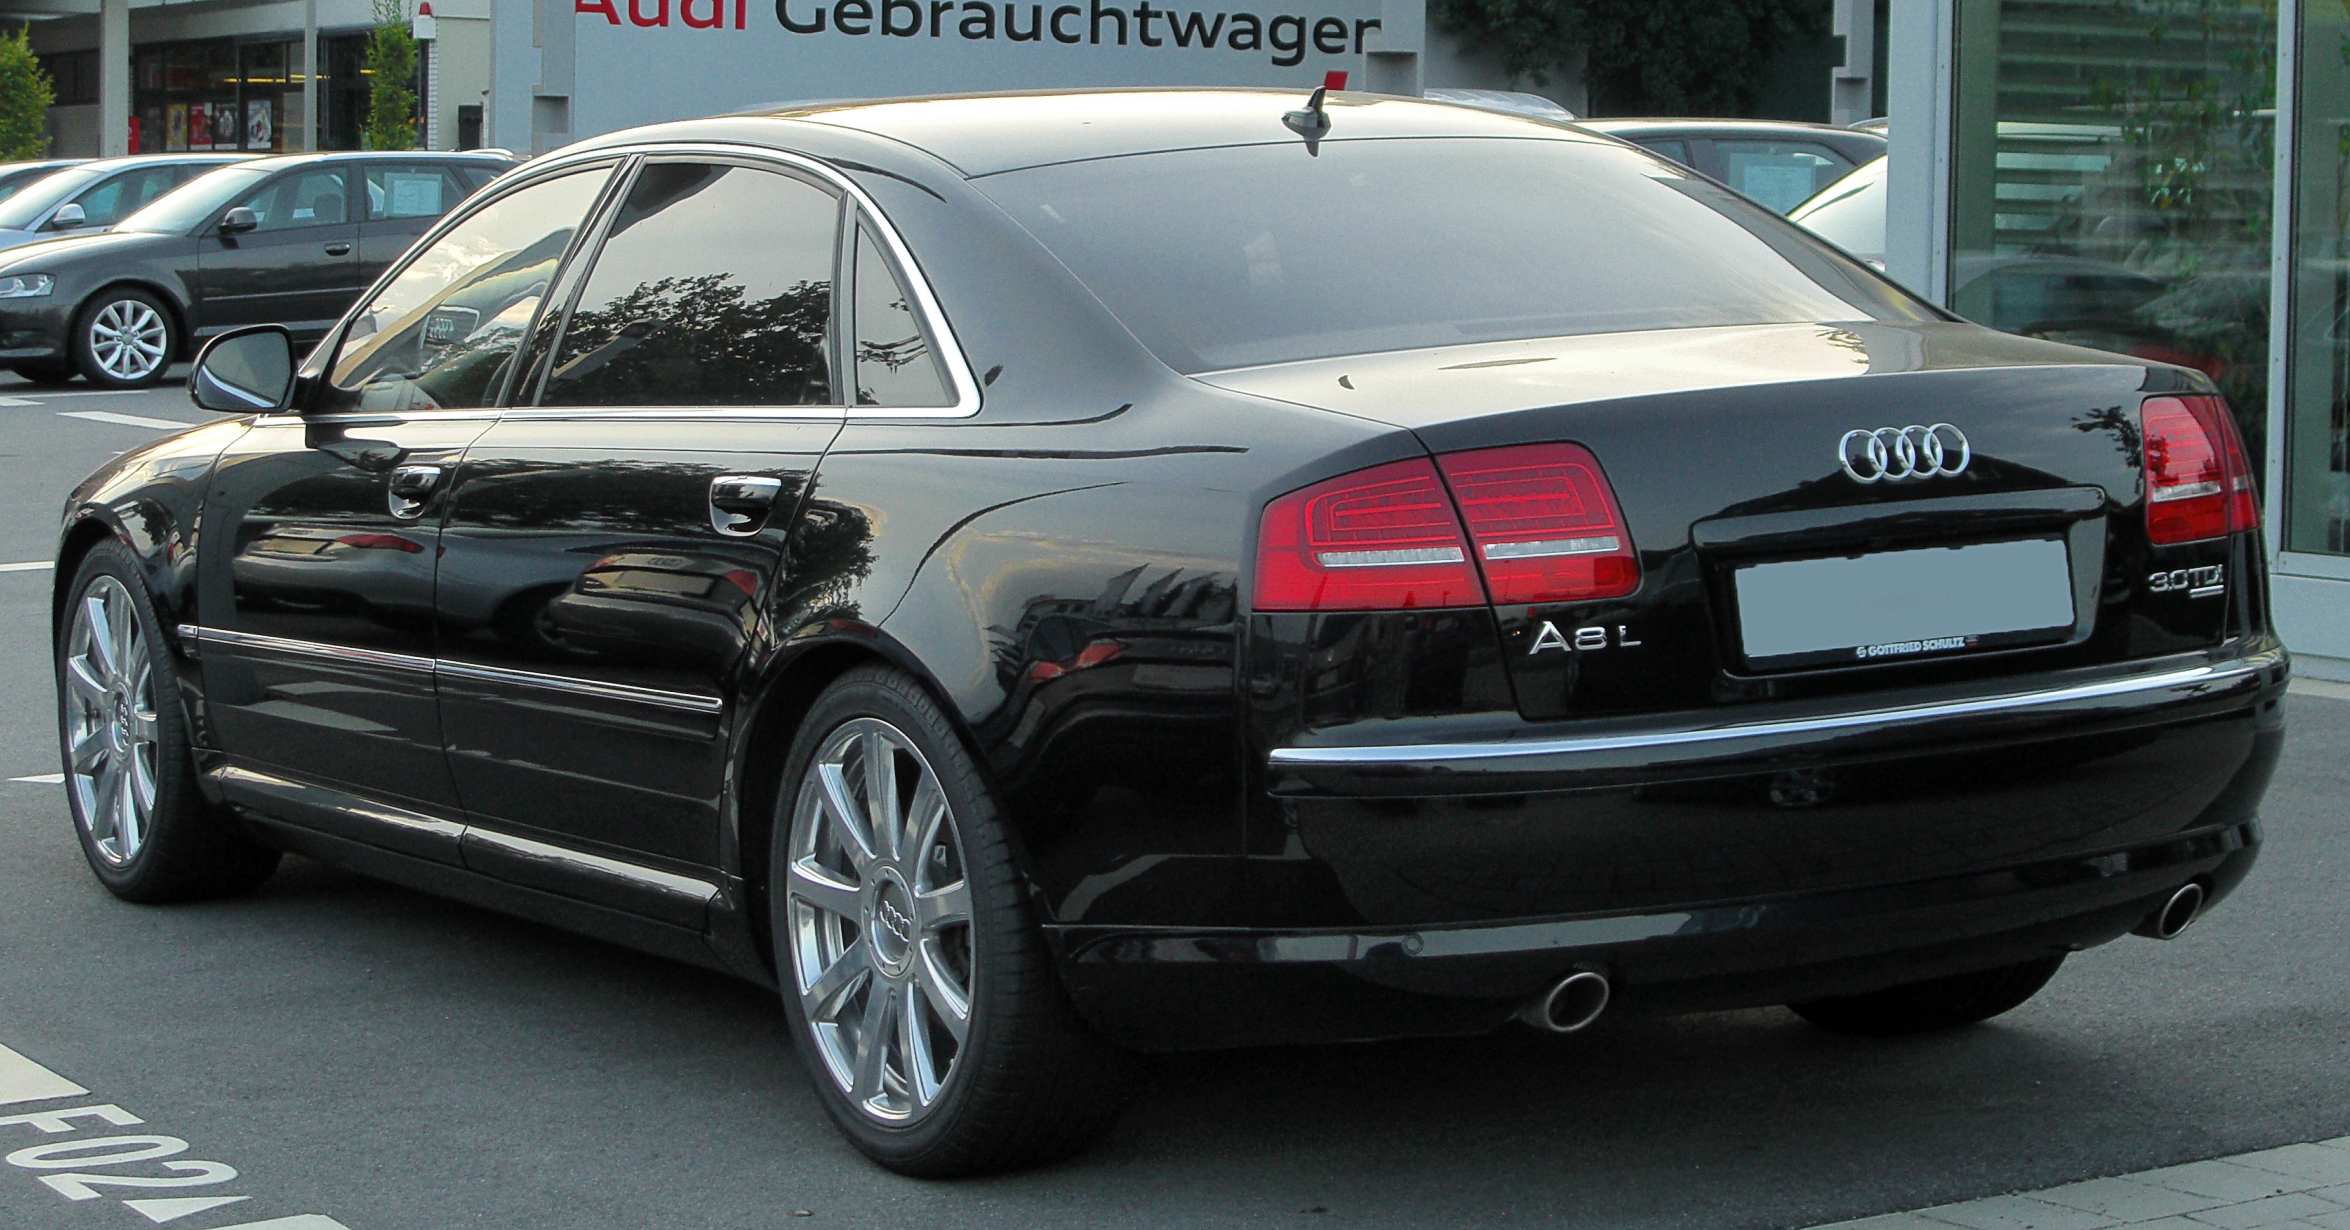 2009 audi a8 4 2 tdi quattro related infomation. Black Bedroom Furniture Sets. Home Design Ideas